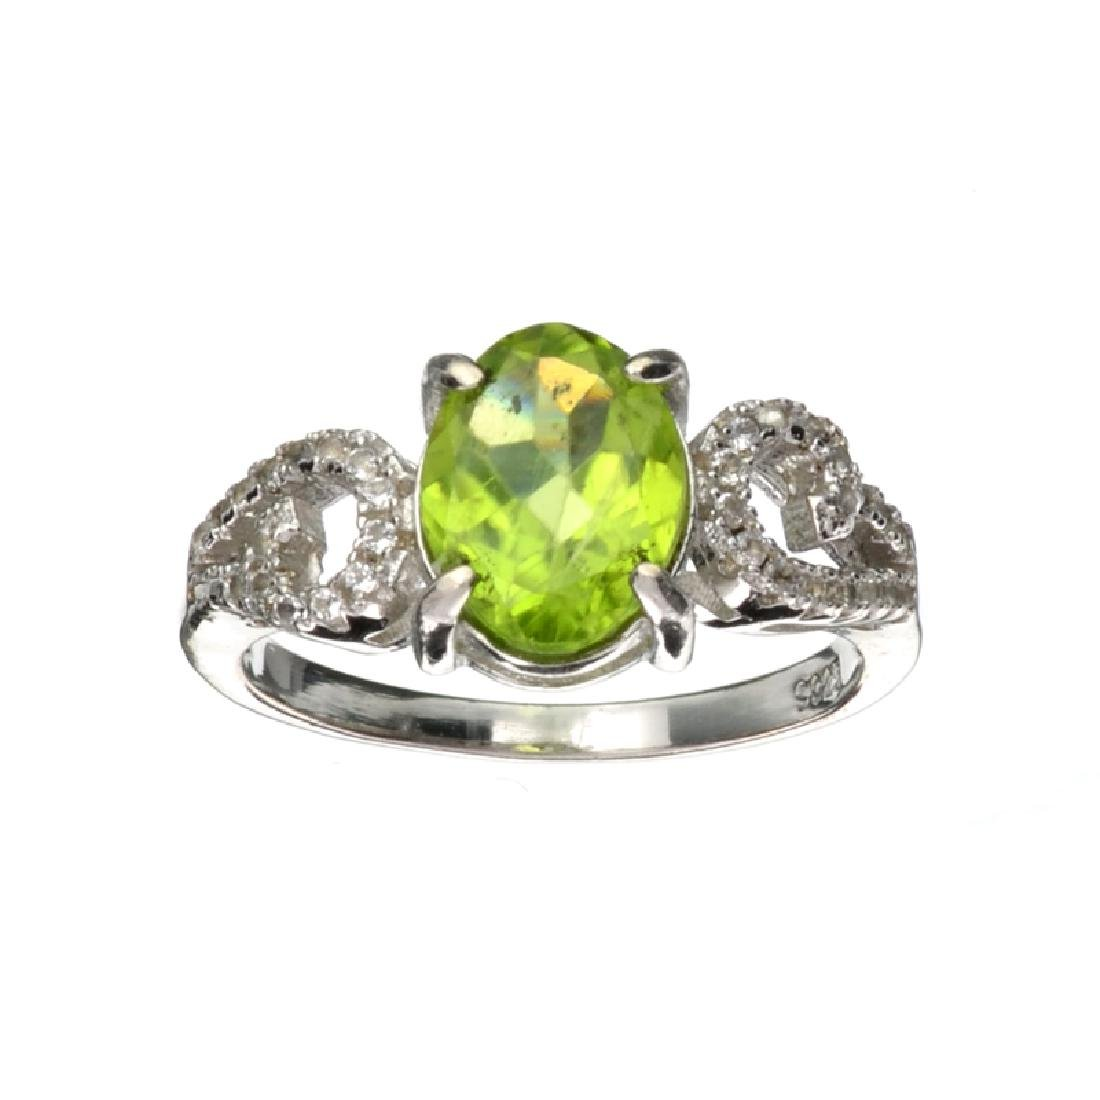 APP: 1k Fine Jewelry 2.16CT Green Peridot And Colorless